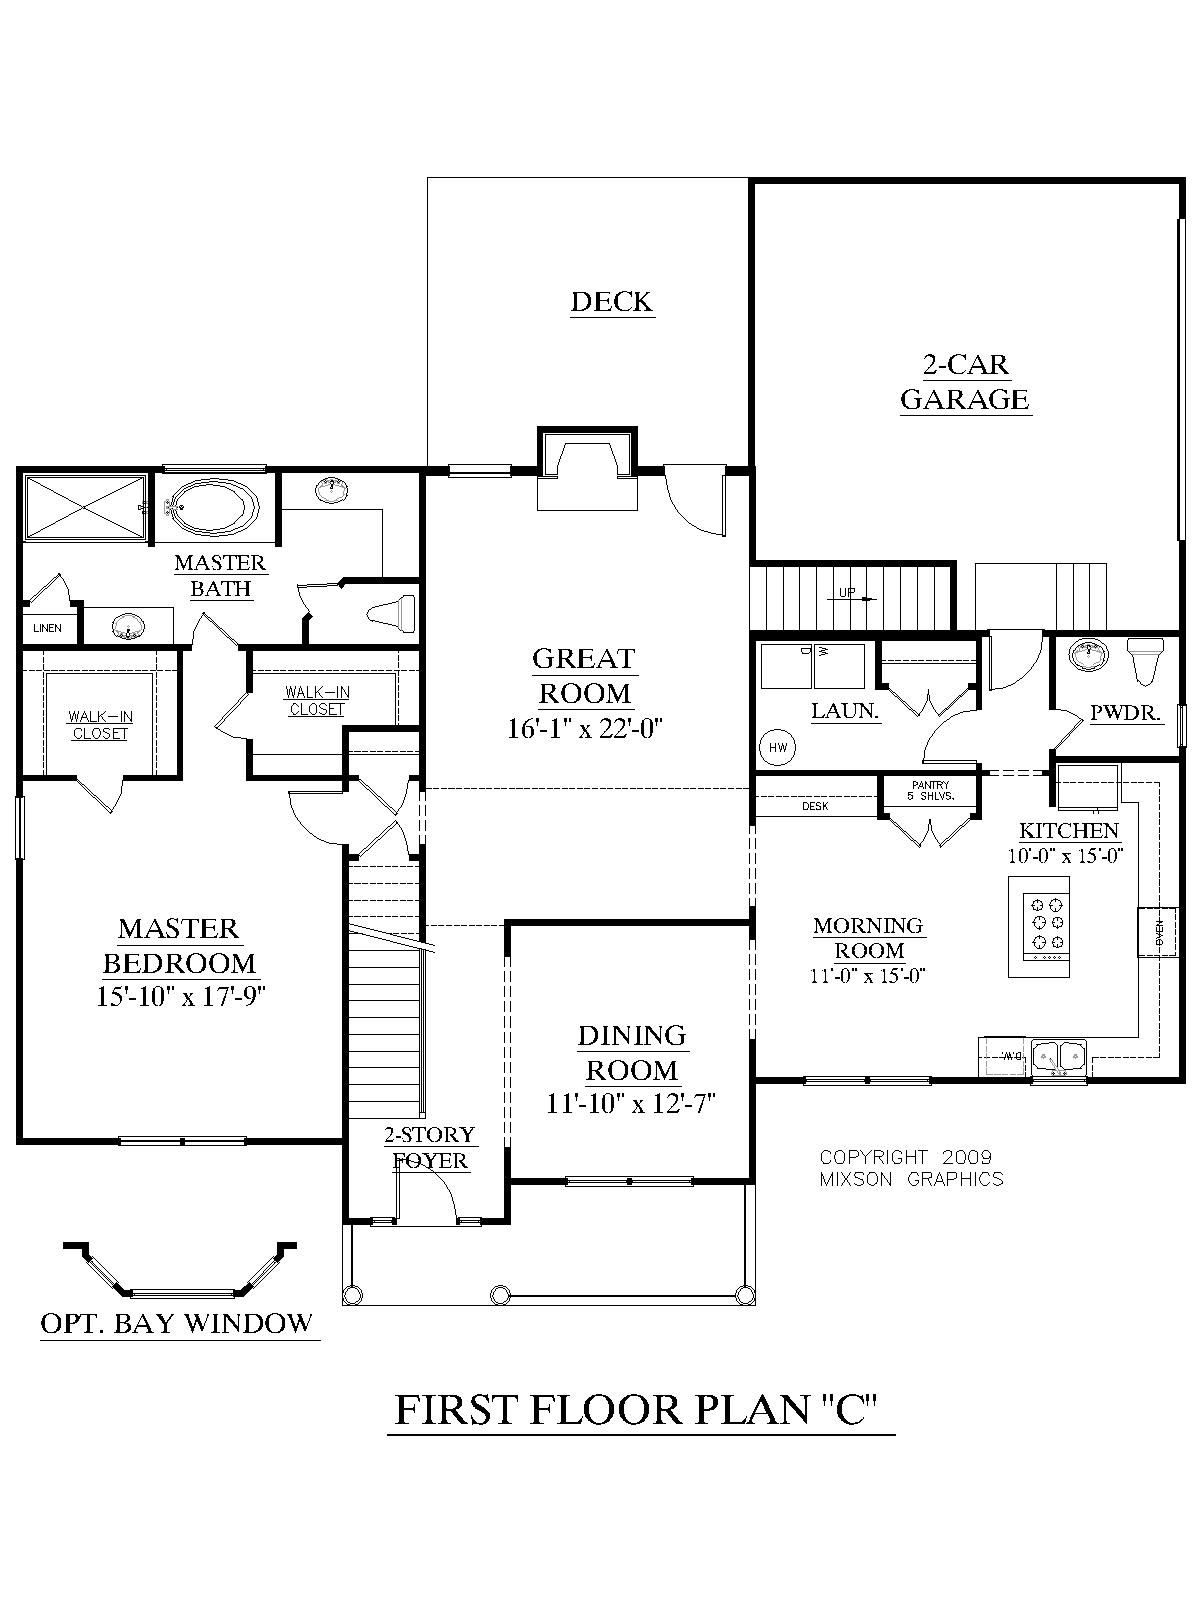 Pin By Sydney B On House Plans By Southern Heritage Home Designs Bedroom House Plans 4 Bedroom House Plans Master Suite Floor Plan